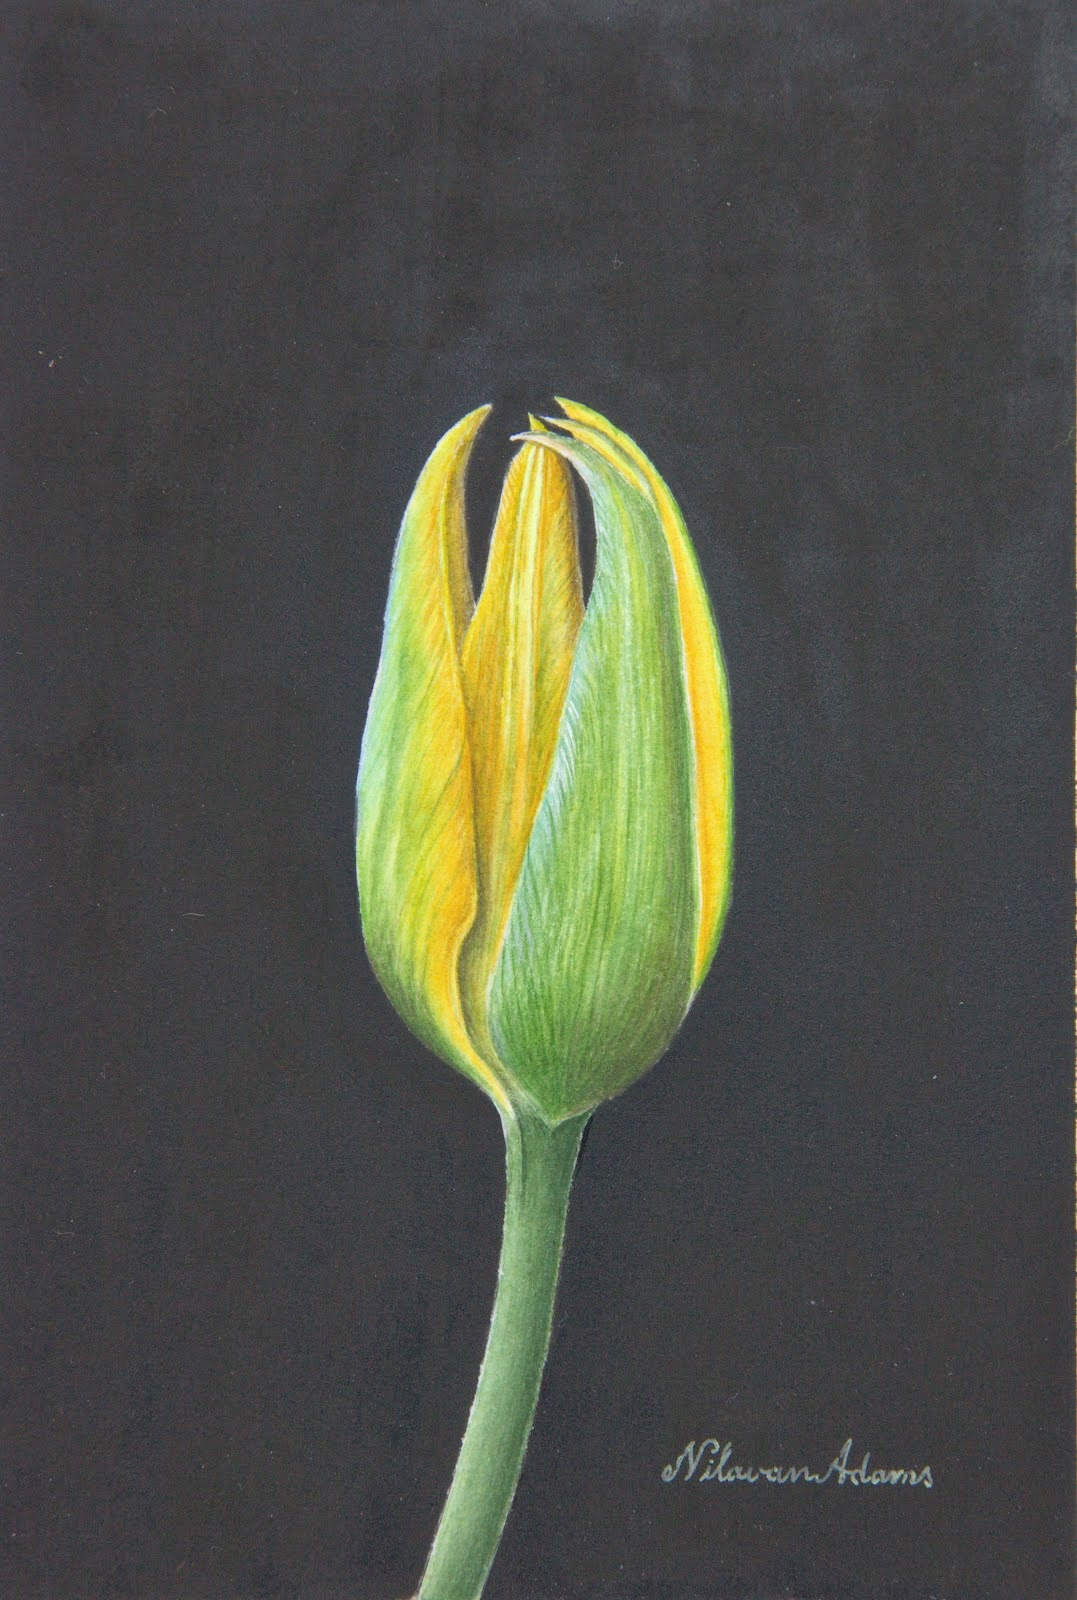 Nilavan Adams closed tulip